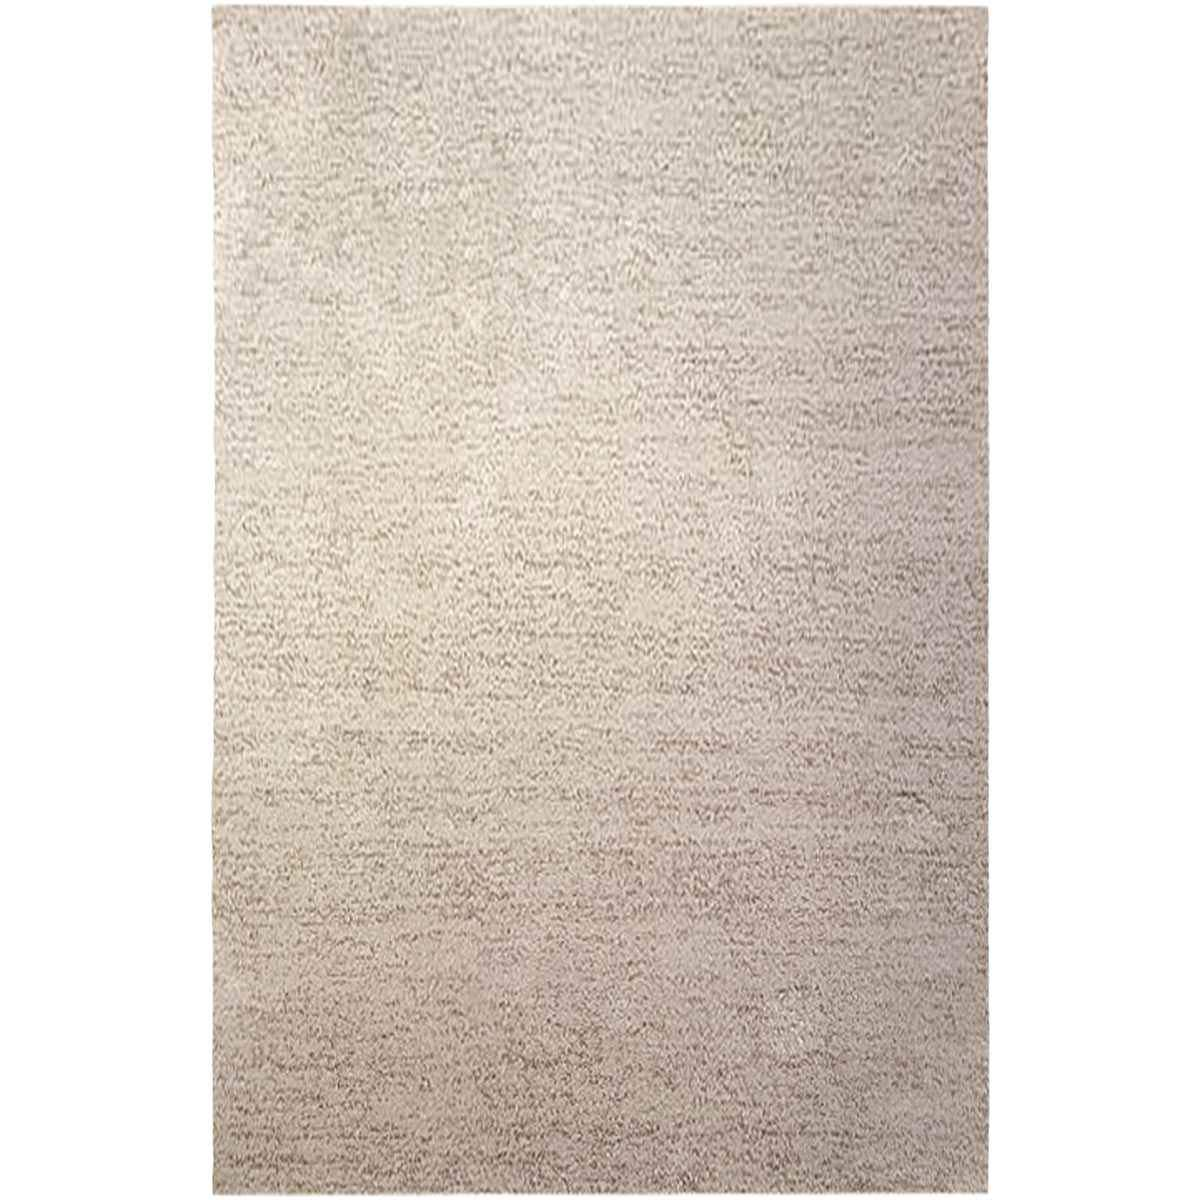 Monaco Rug 01 Light Beige 1